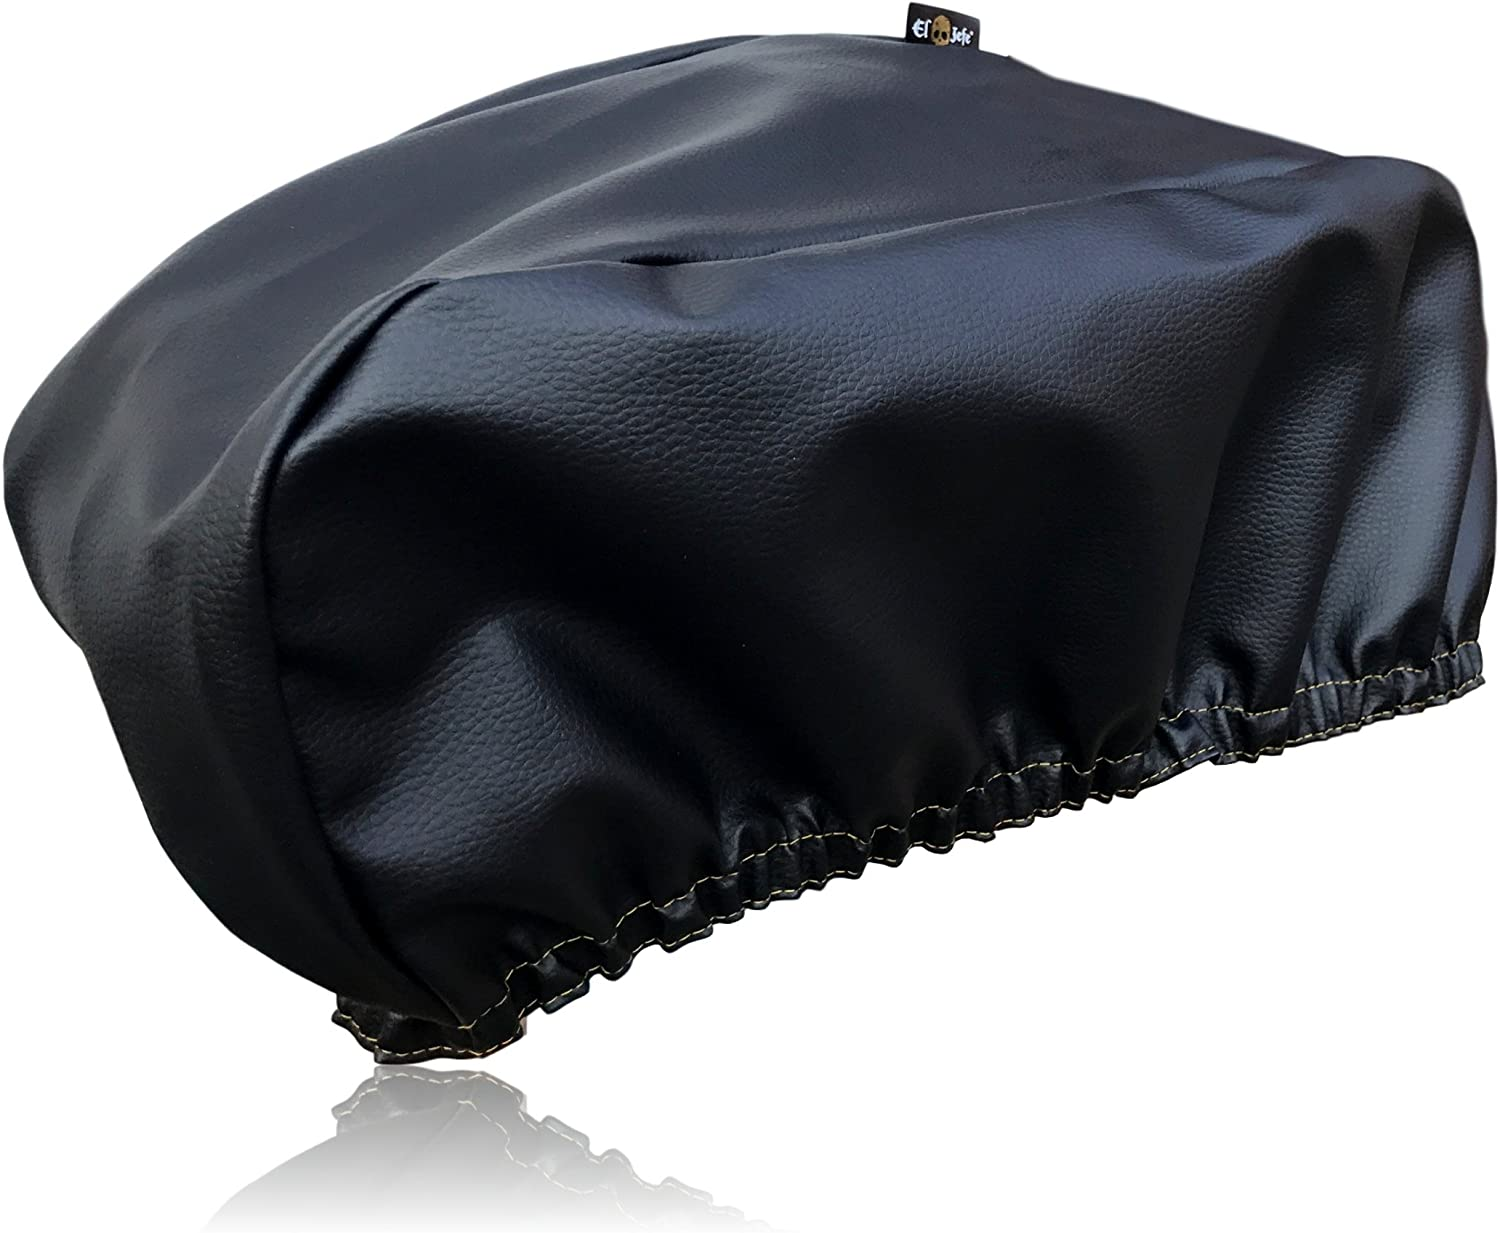 EL JEFE free shipping Premium Winch Cover Winches 8000-13000 lb. Fits Max 87% OFF